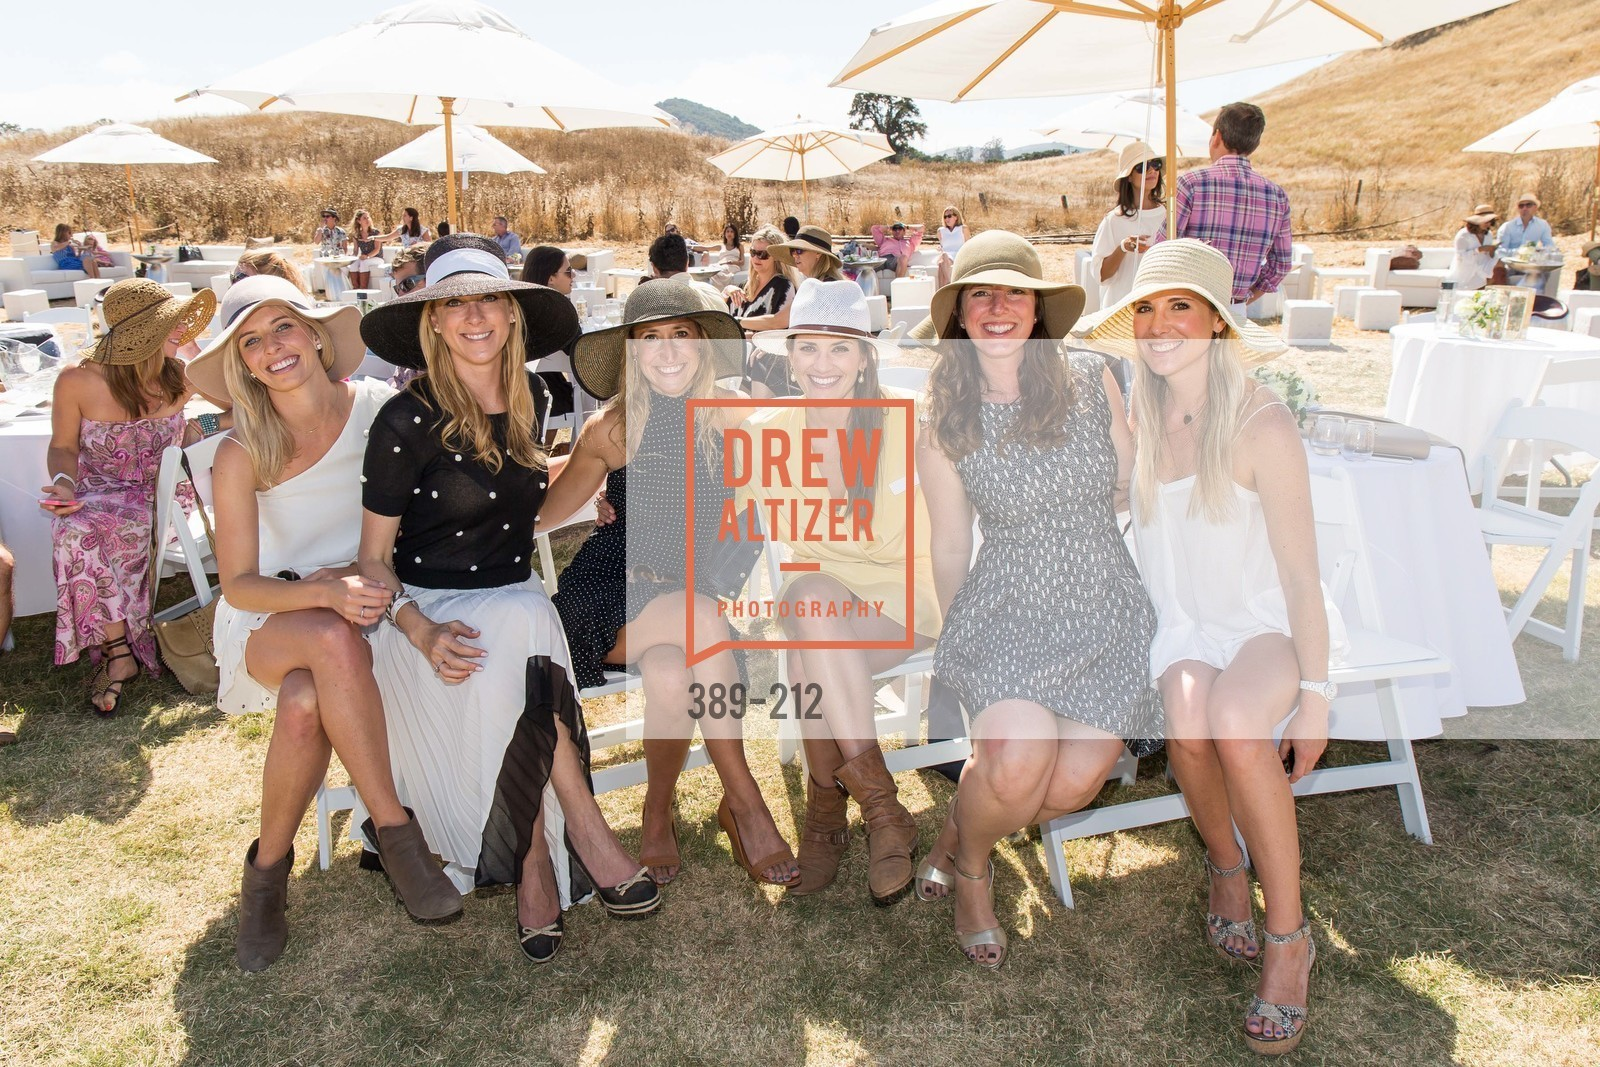 Kate Jorgensen, Lauren Wolfe, Meredith Kendall, Jennifer Hirsch, Samantha Hartwell, Stick & Ball Oyster Cup Polo Tournament, Cerro Pampa Polo Club, July 25th, 2015,Drew Altizer, Drew Altizer Photography, full-service agency, private events, San Francisco photographer, photographer california